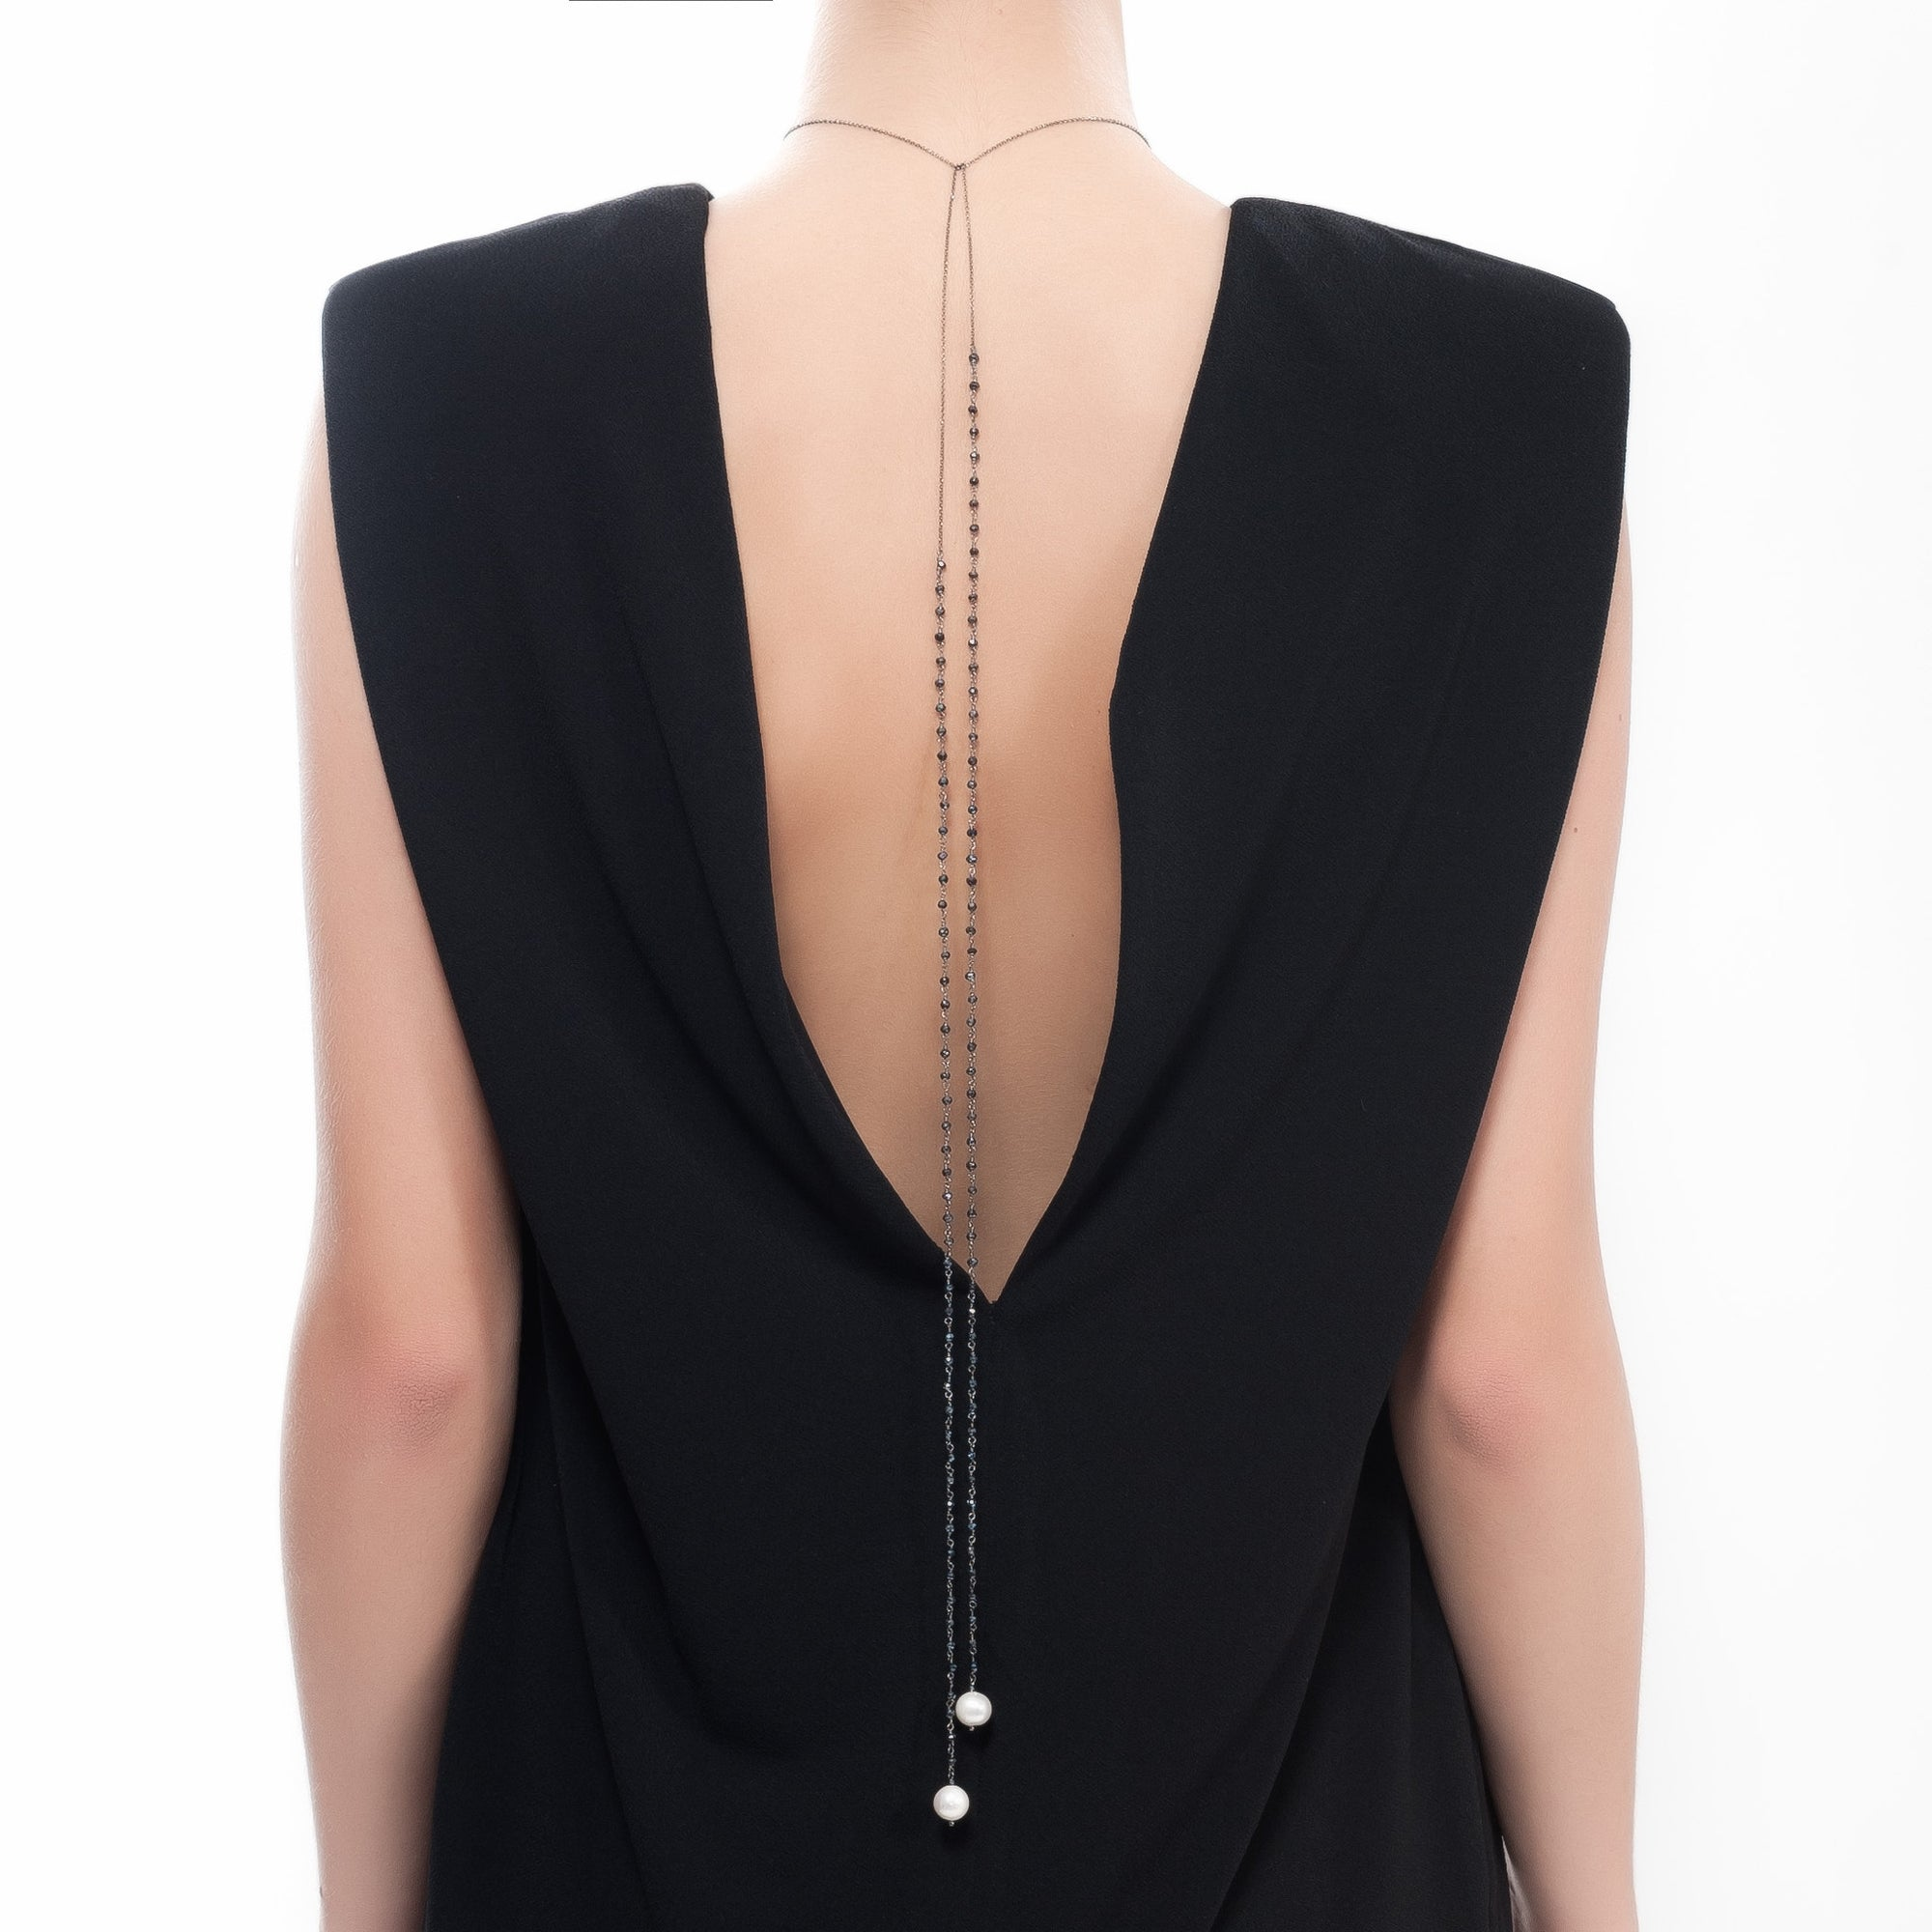 Back Necklaces